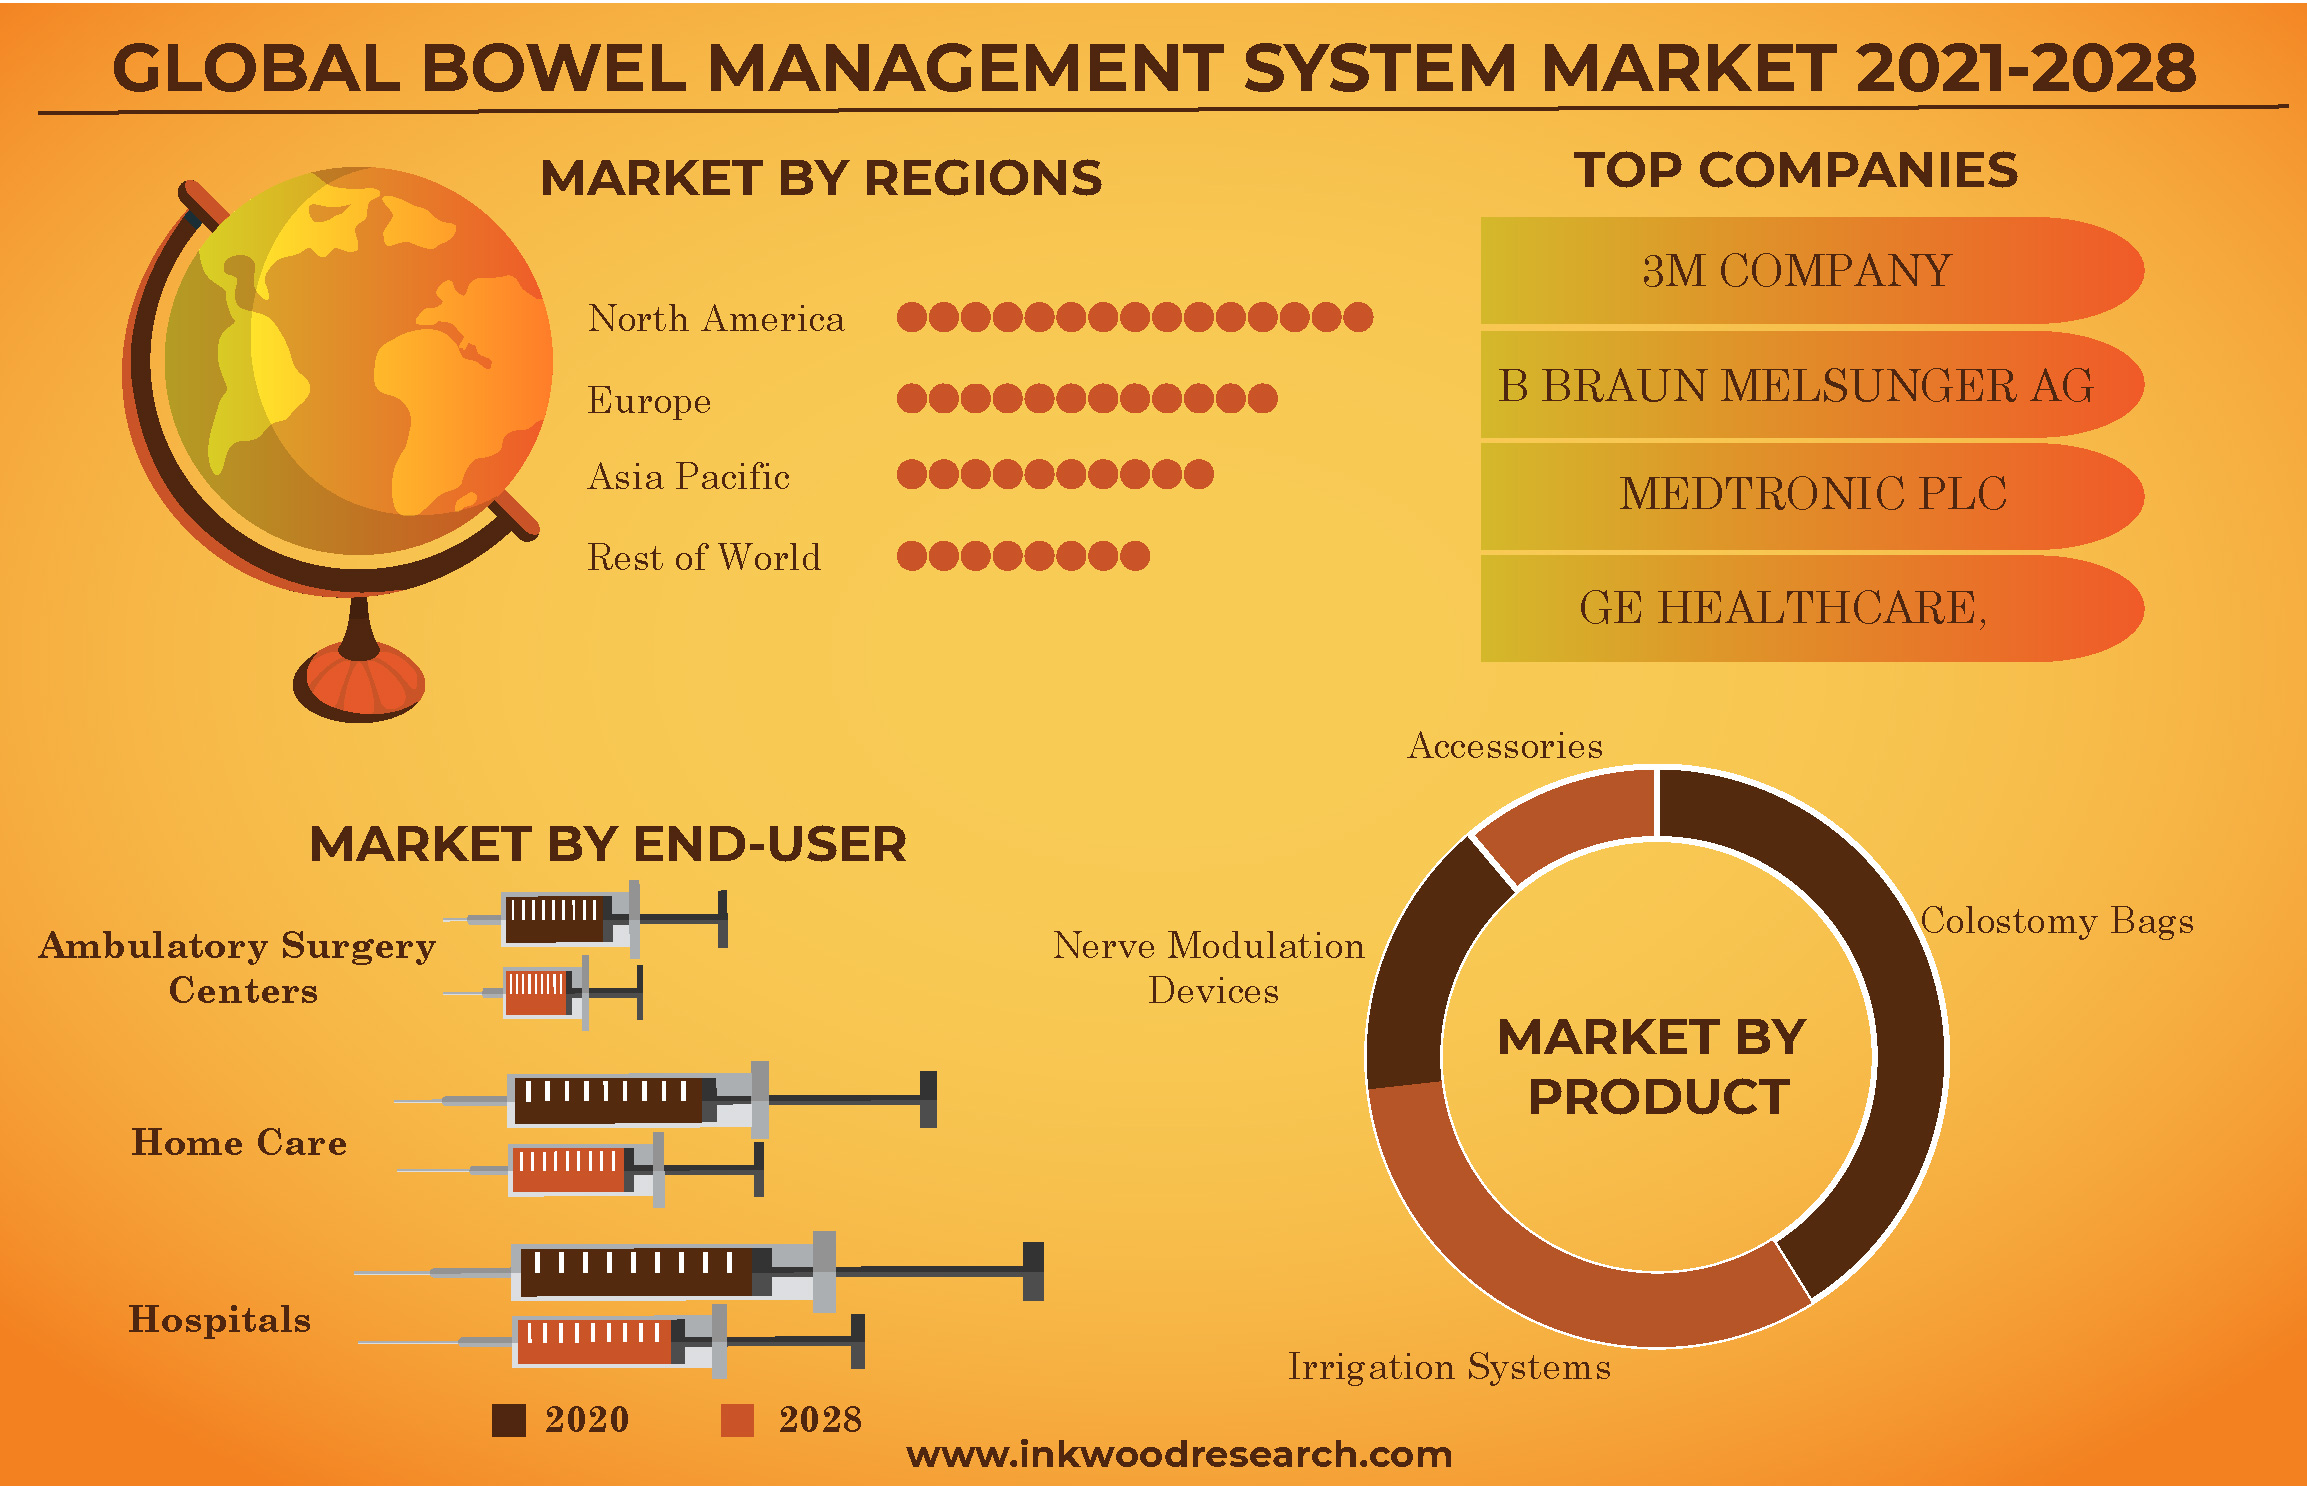 Increasing Gastrointestinal Disorders to augment the Global Bowel Management System Market Growth